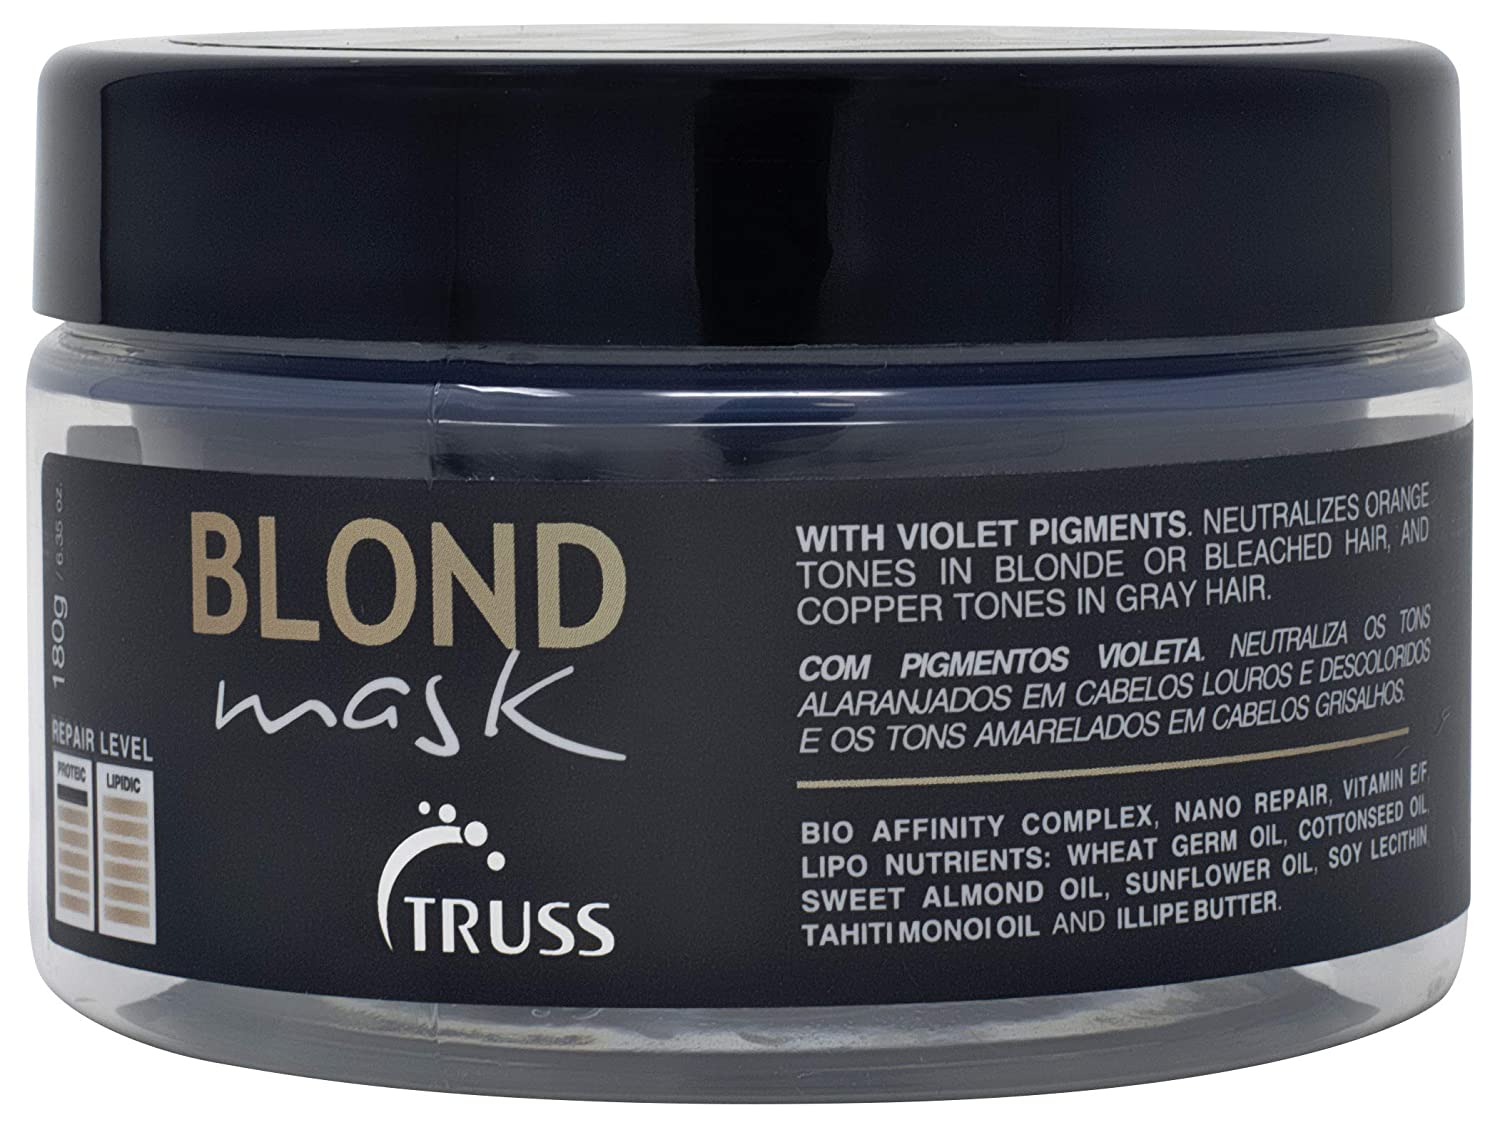 Truss Blond Mask - Hair Mask Treatment for Blonde, Bleached and Gray Hair - Violet Pigments Neutralizes Unwanted Orange Tones and Brassiness - Hydrating Mask for Dry Damaged Hair